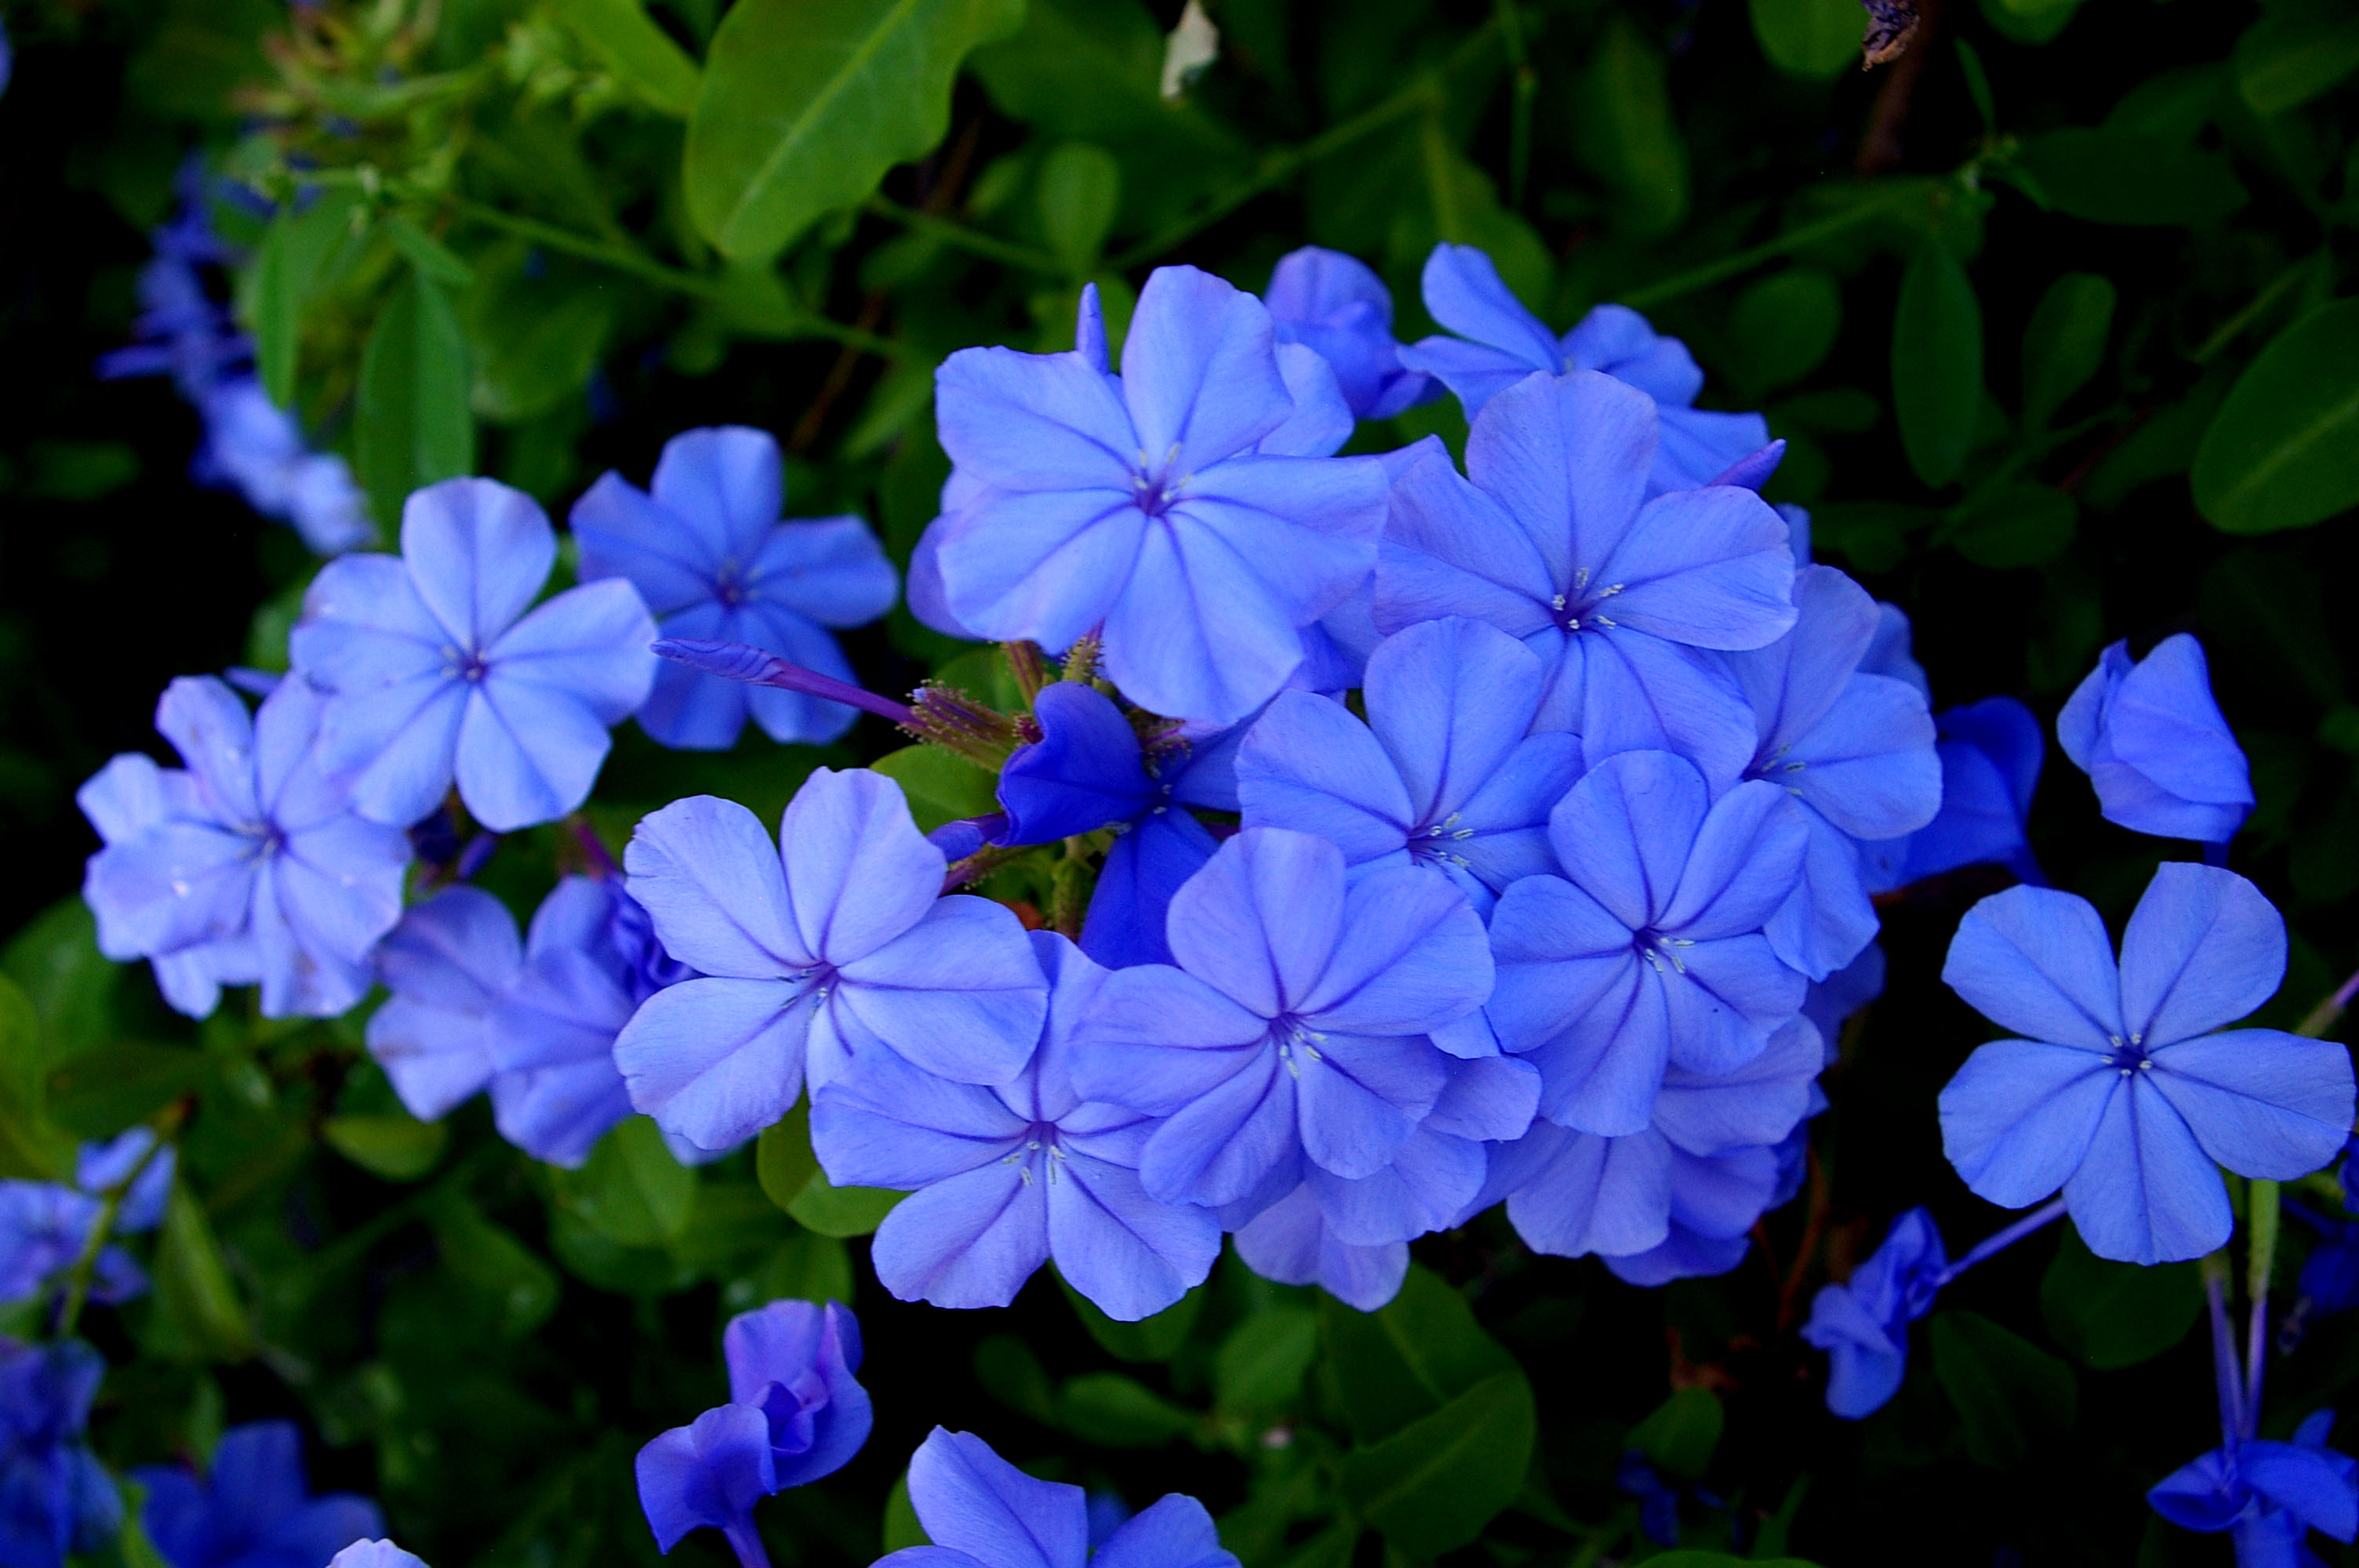 Download blue flowers 14094 3008x2000 px high definition wallpaper blue flowers 14094 izmirmasajfo